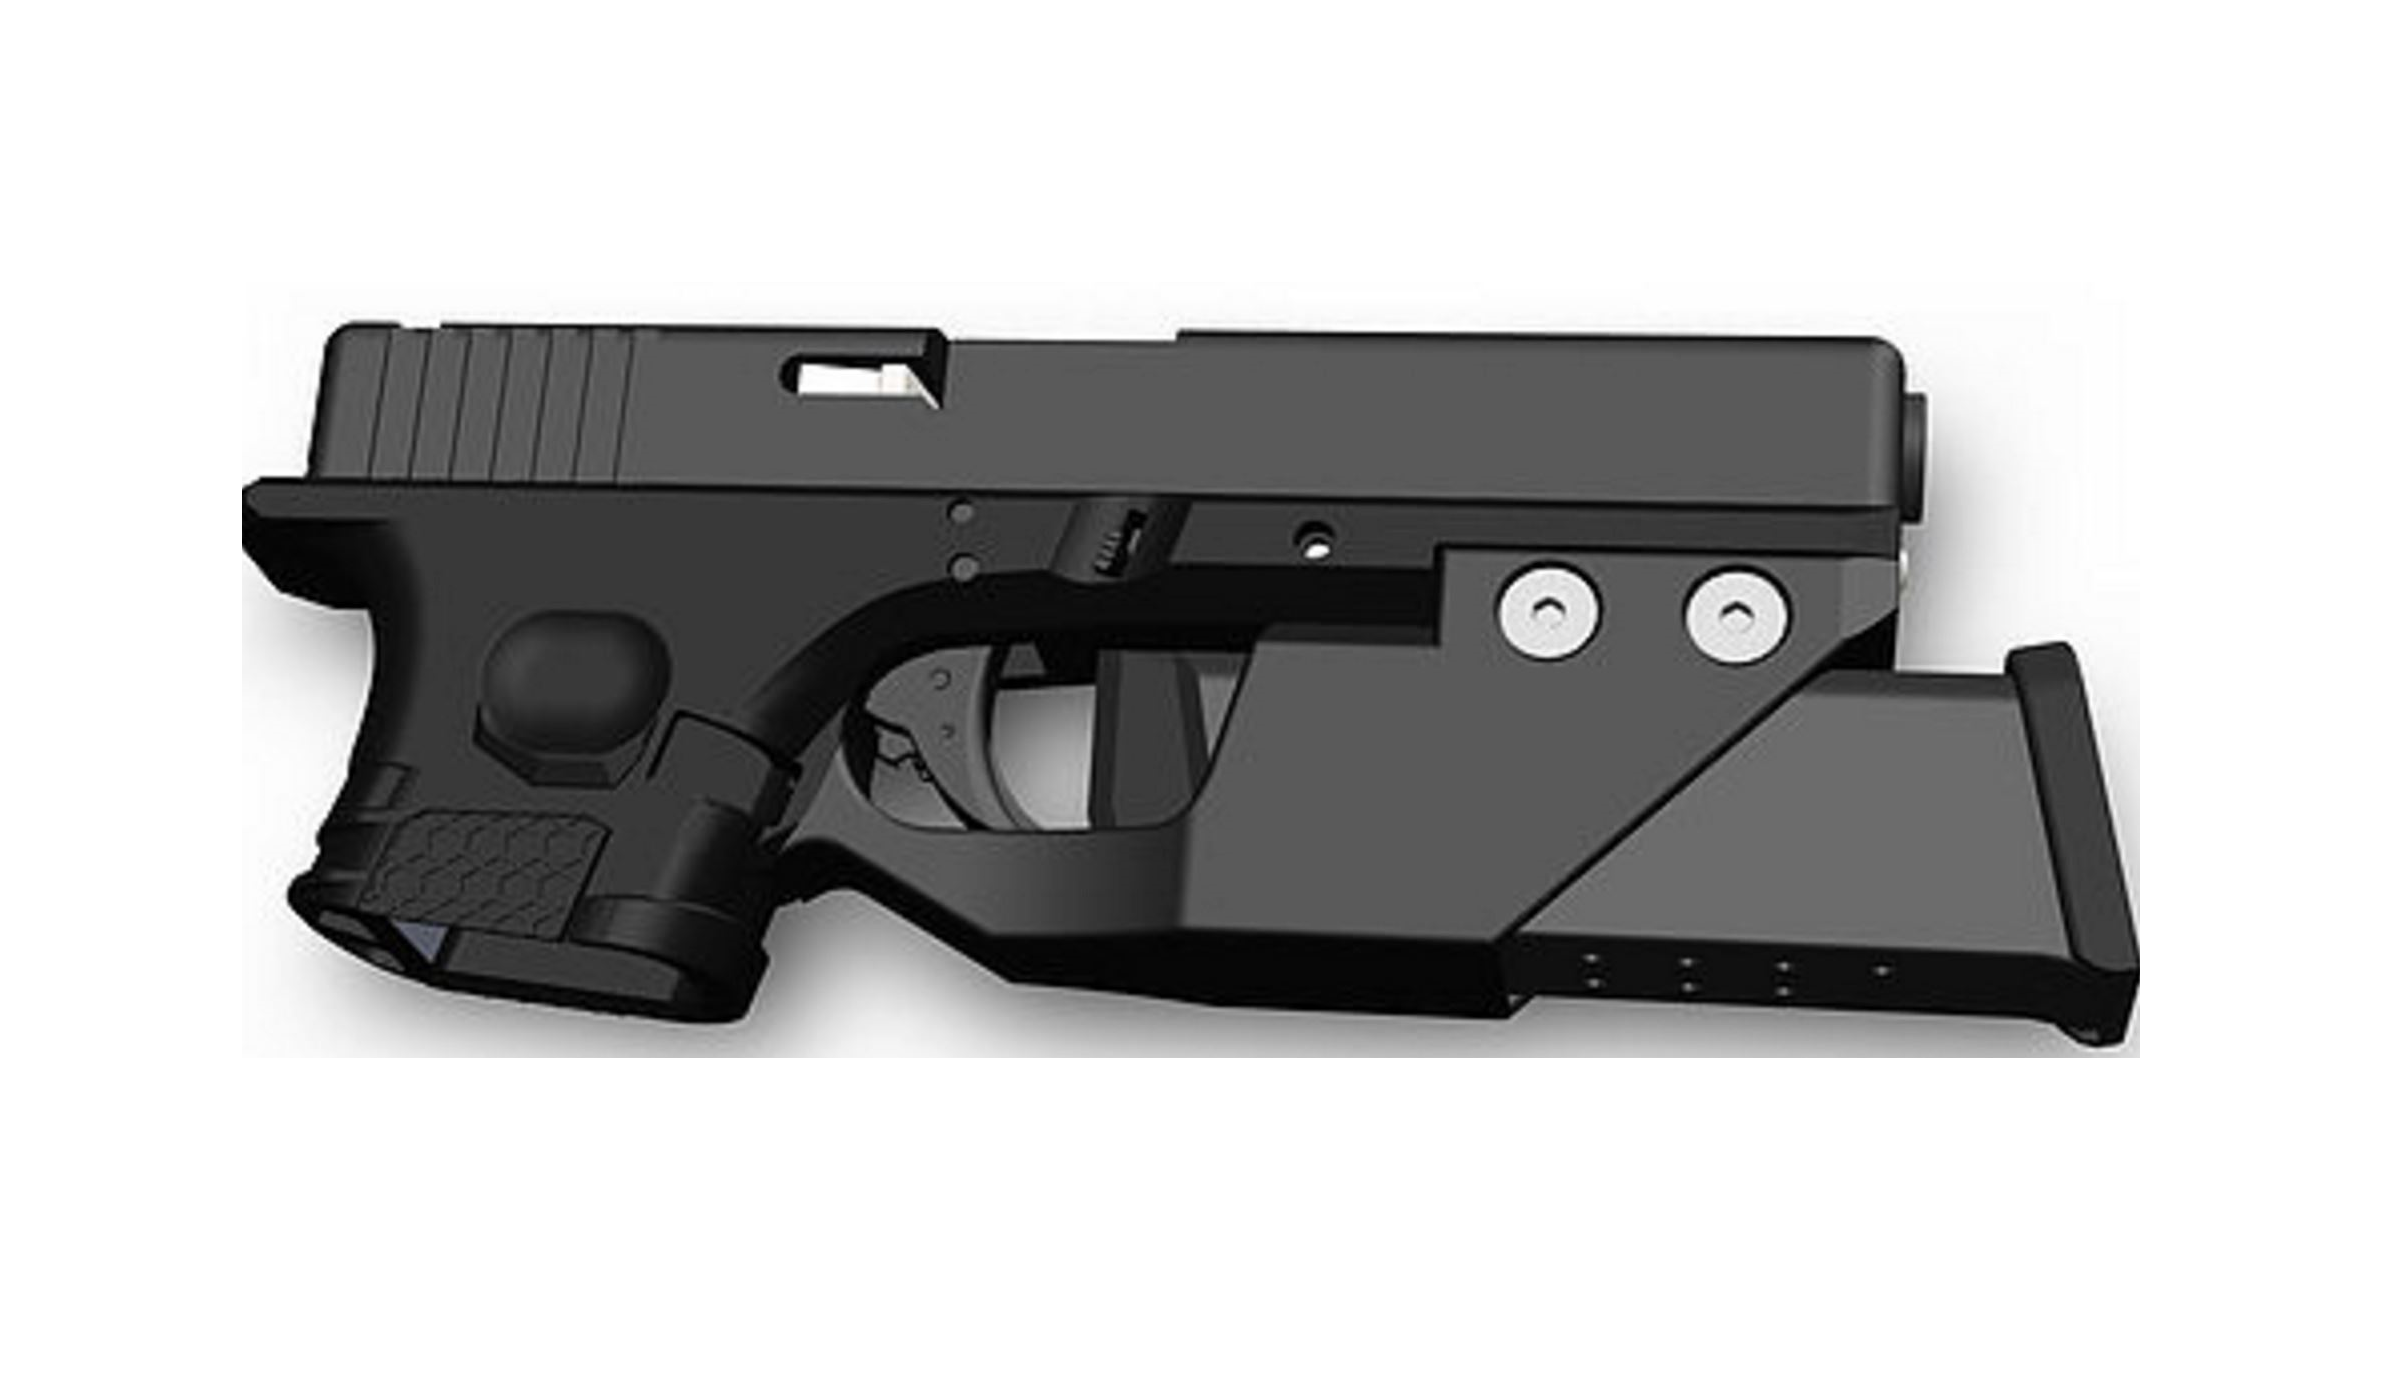 Full Conceal A Handgun Built for Total Concealment Without promising Firepower